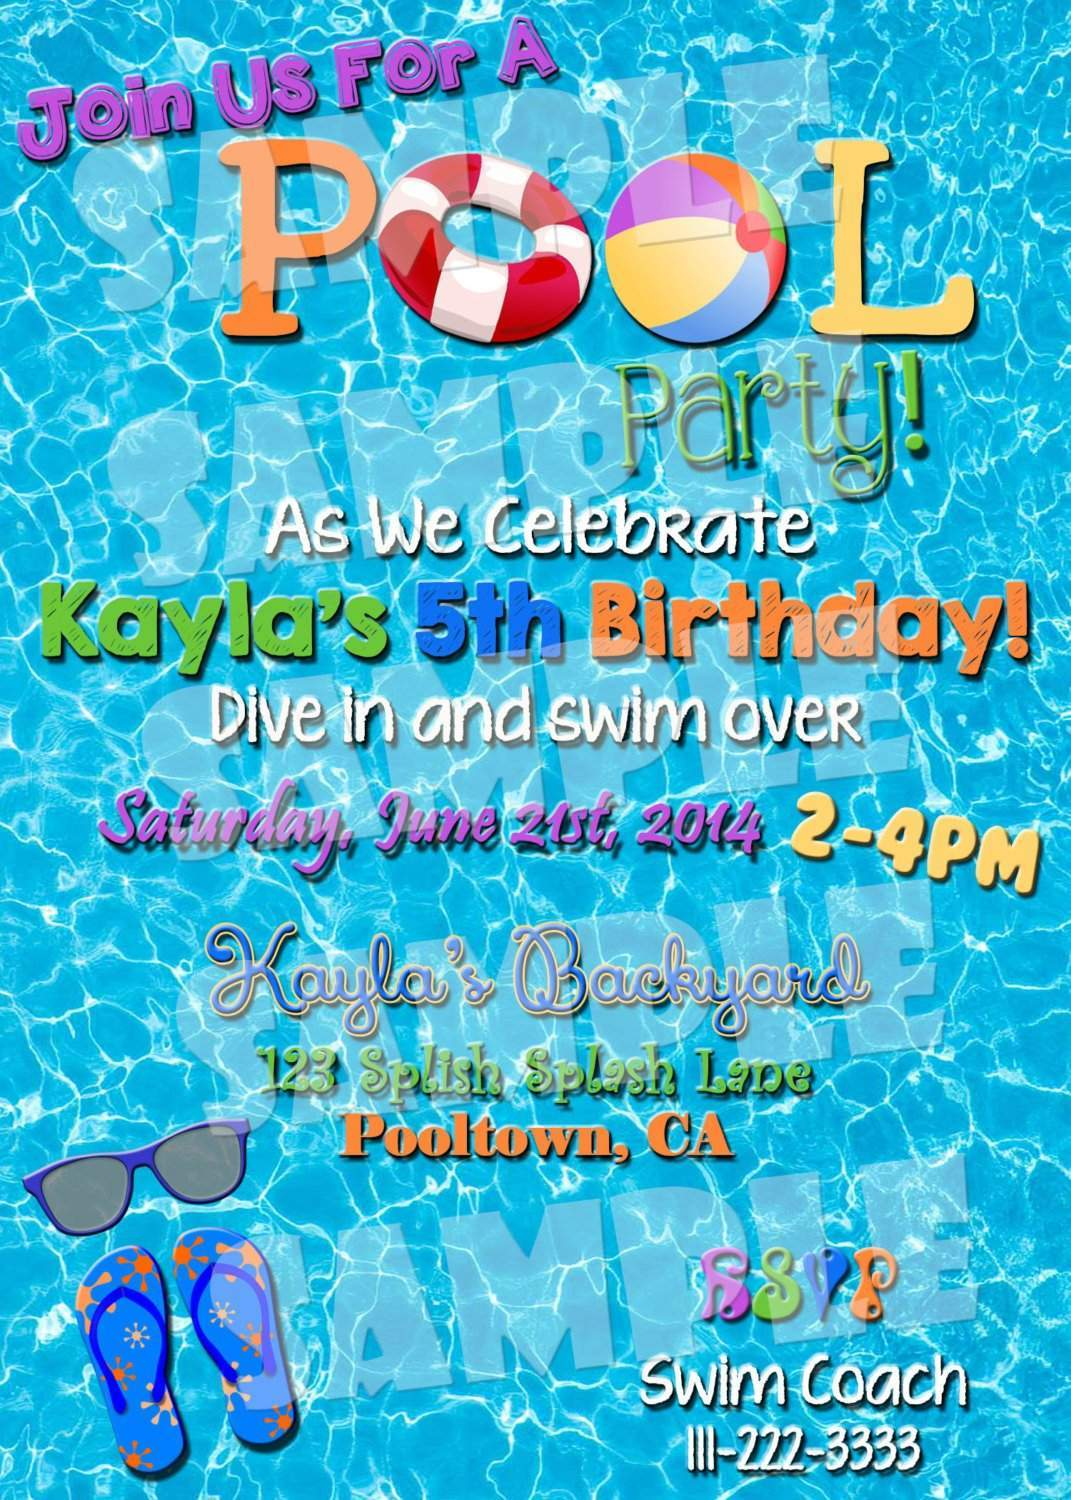 image about Printable Pool Party Invitations named Pool Get together Invitation